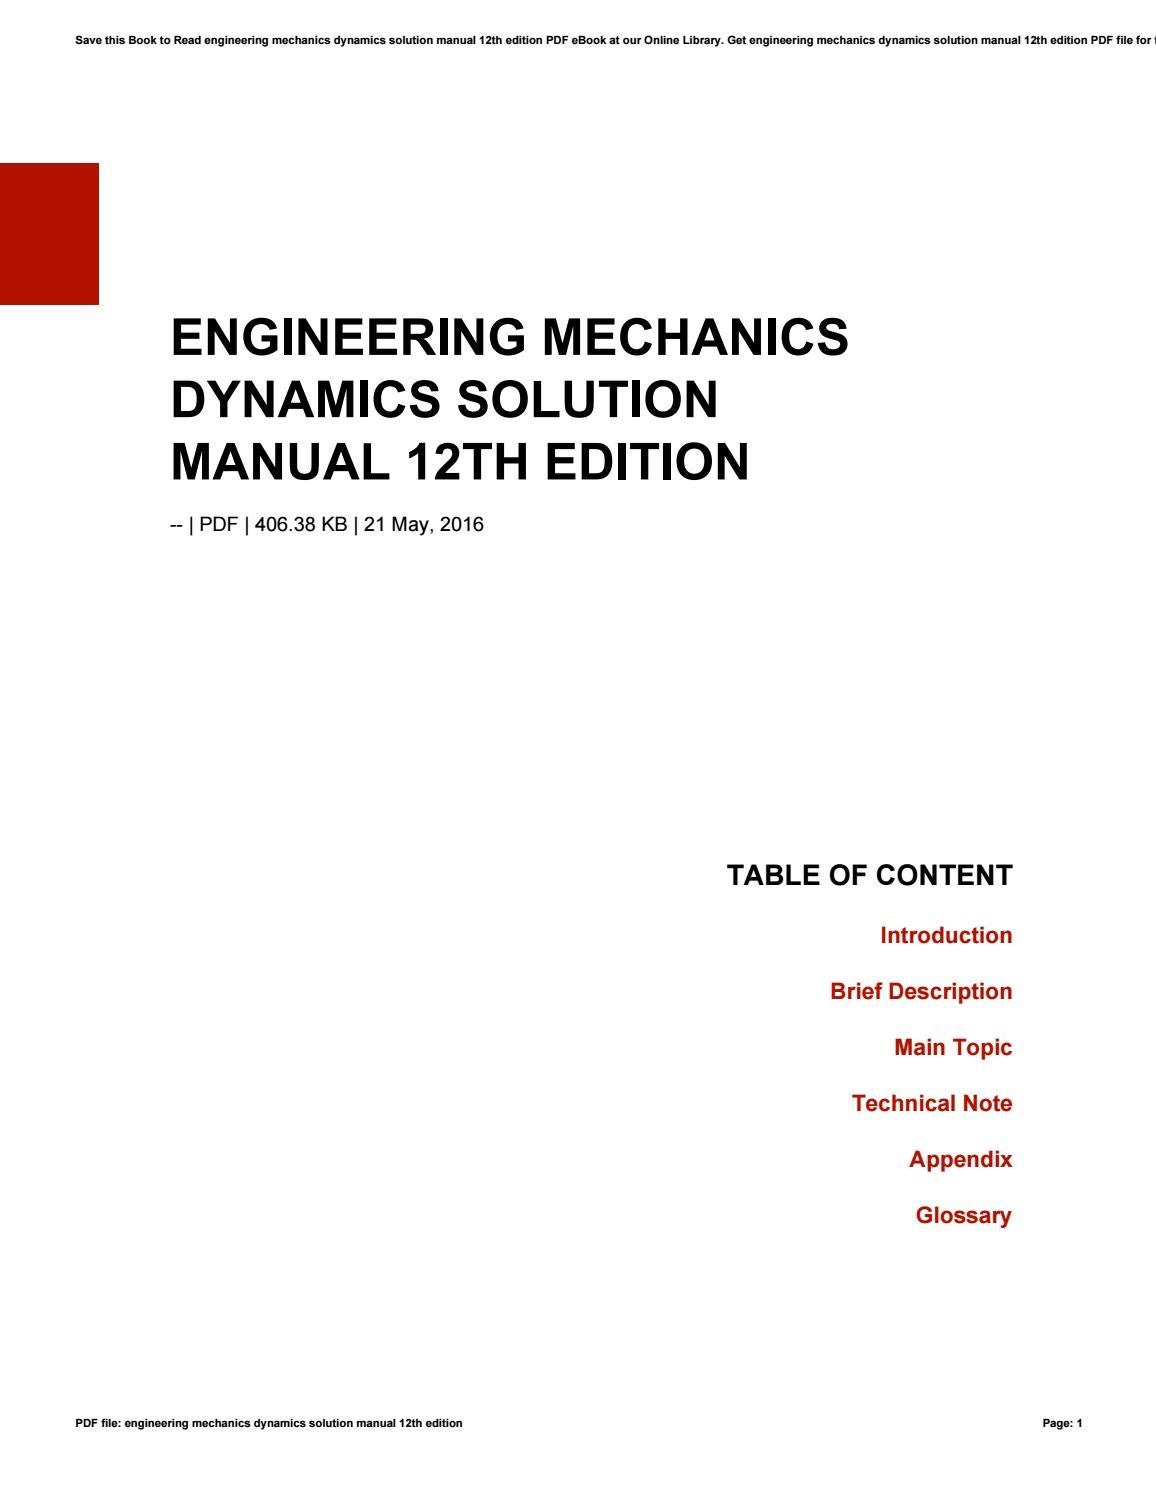 Engineering mechanics dynamics solution manual 12th edition by  minex-coin814 - issuu